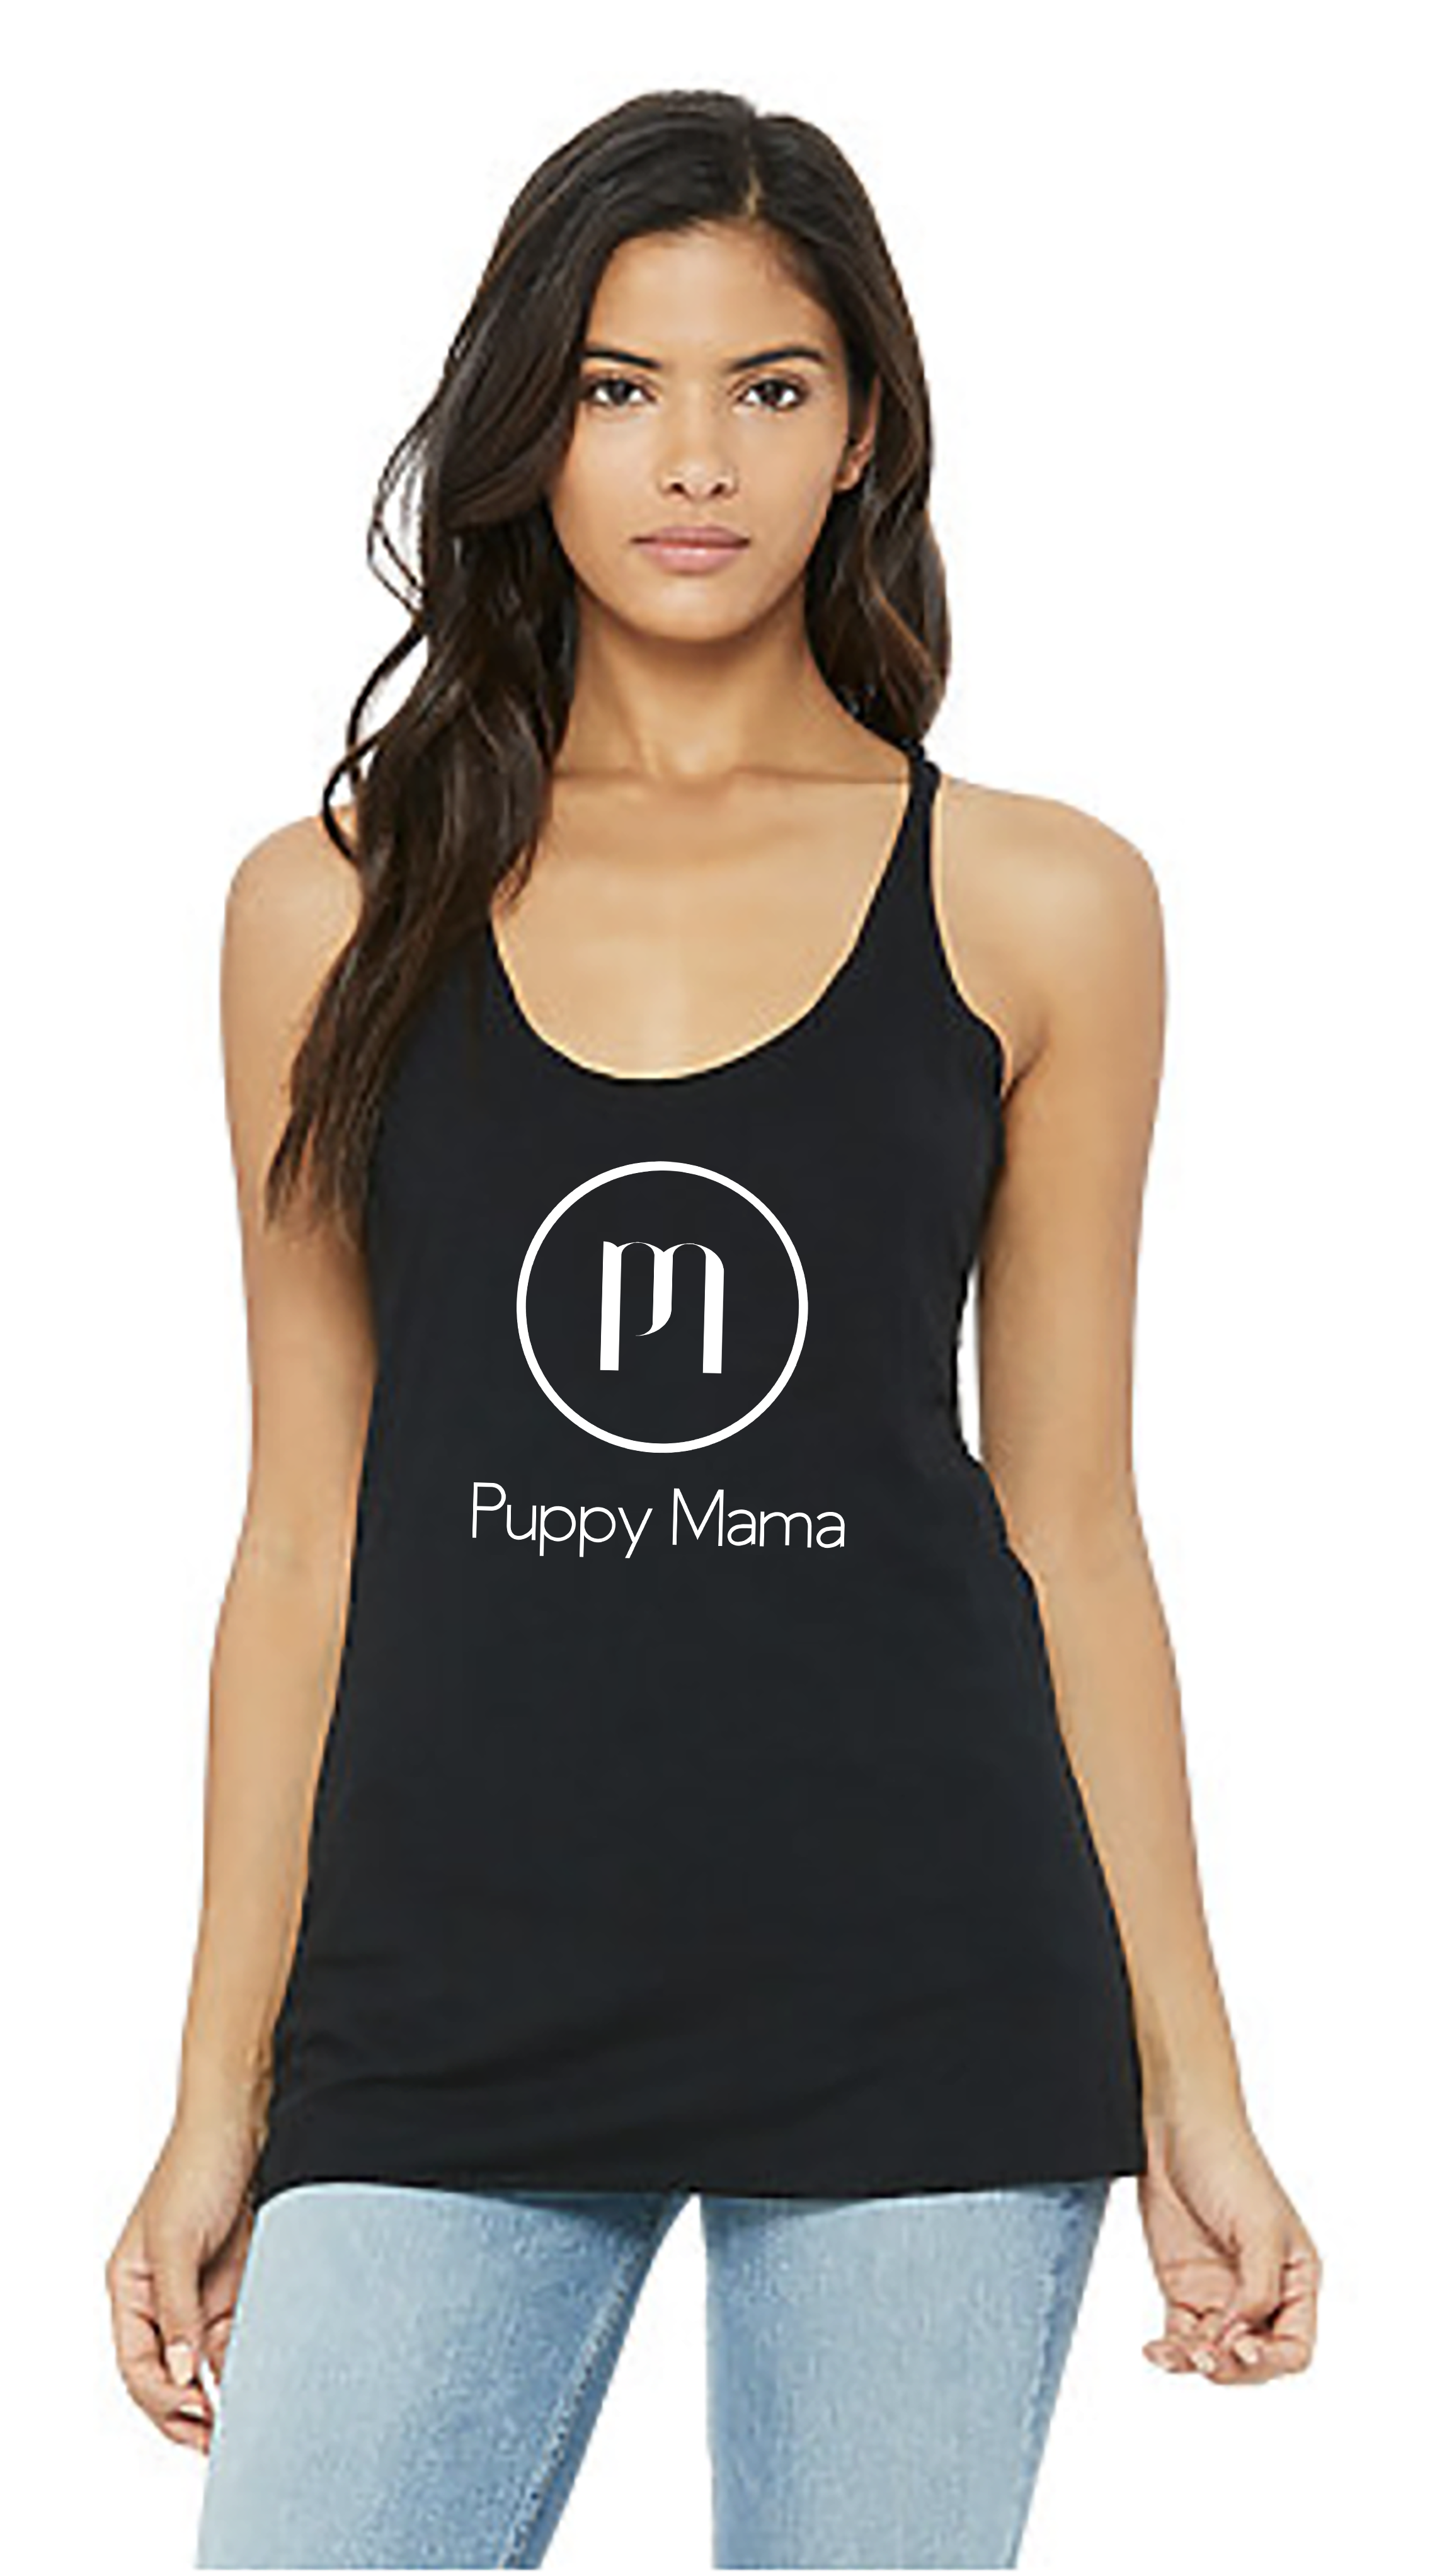 Black Puppy Mama Tank Top (Wholesale Only)